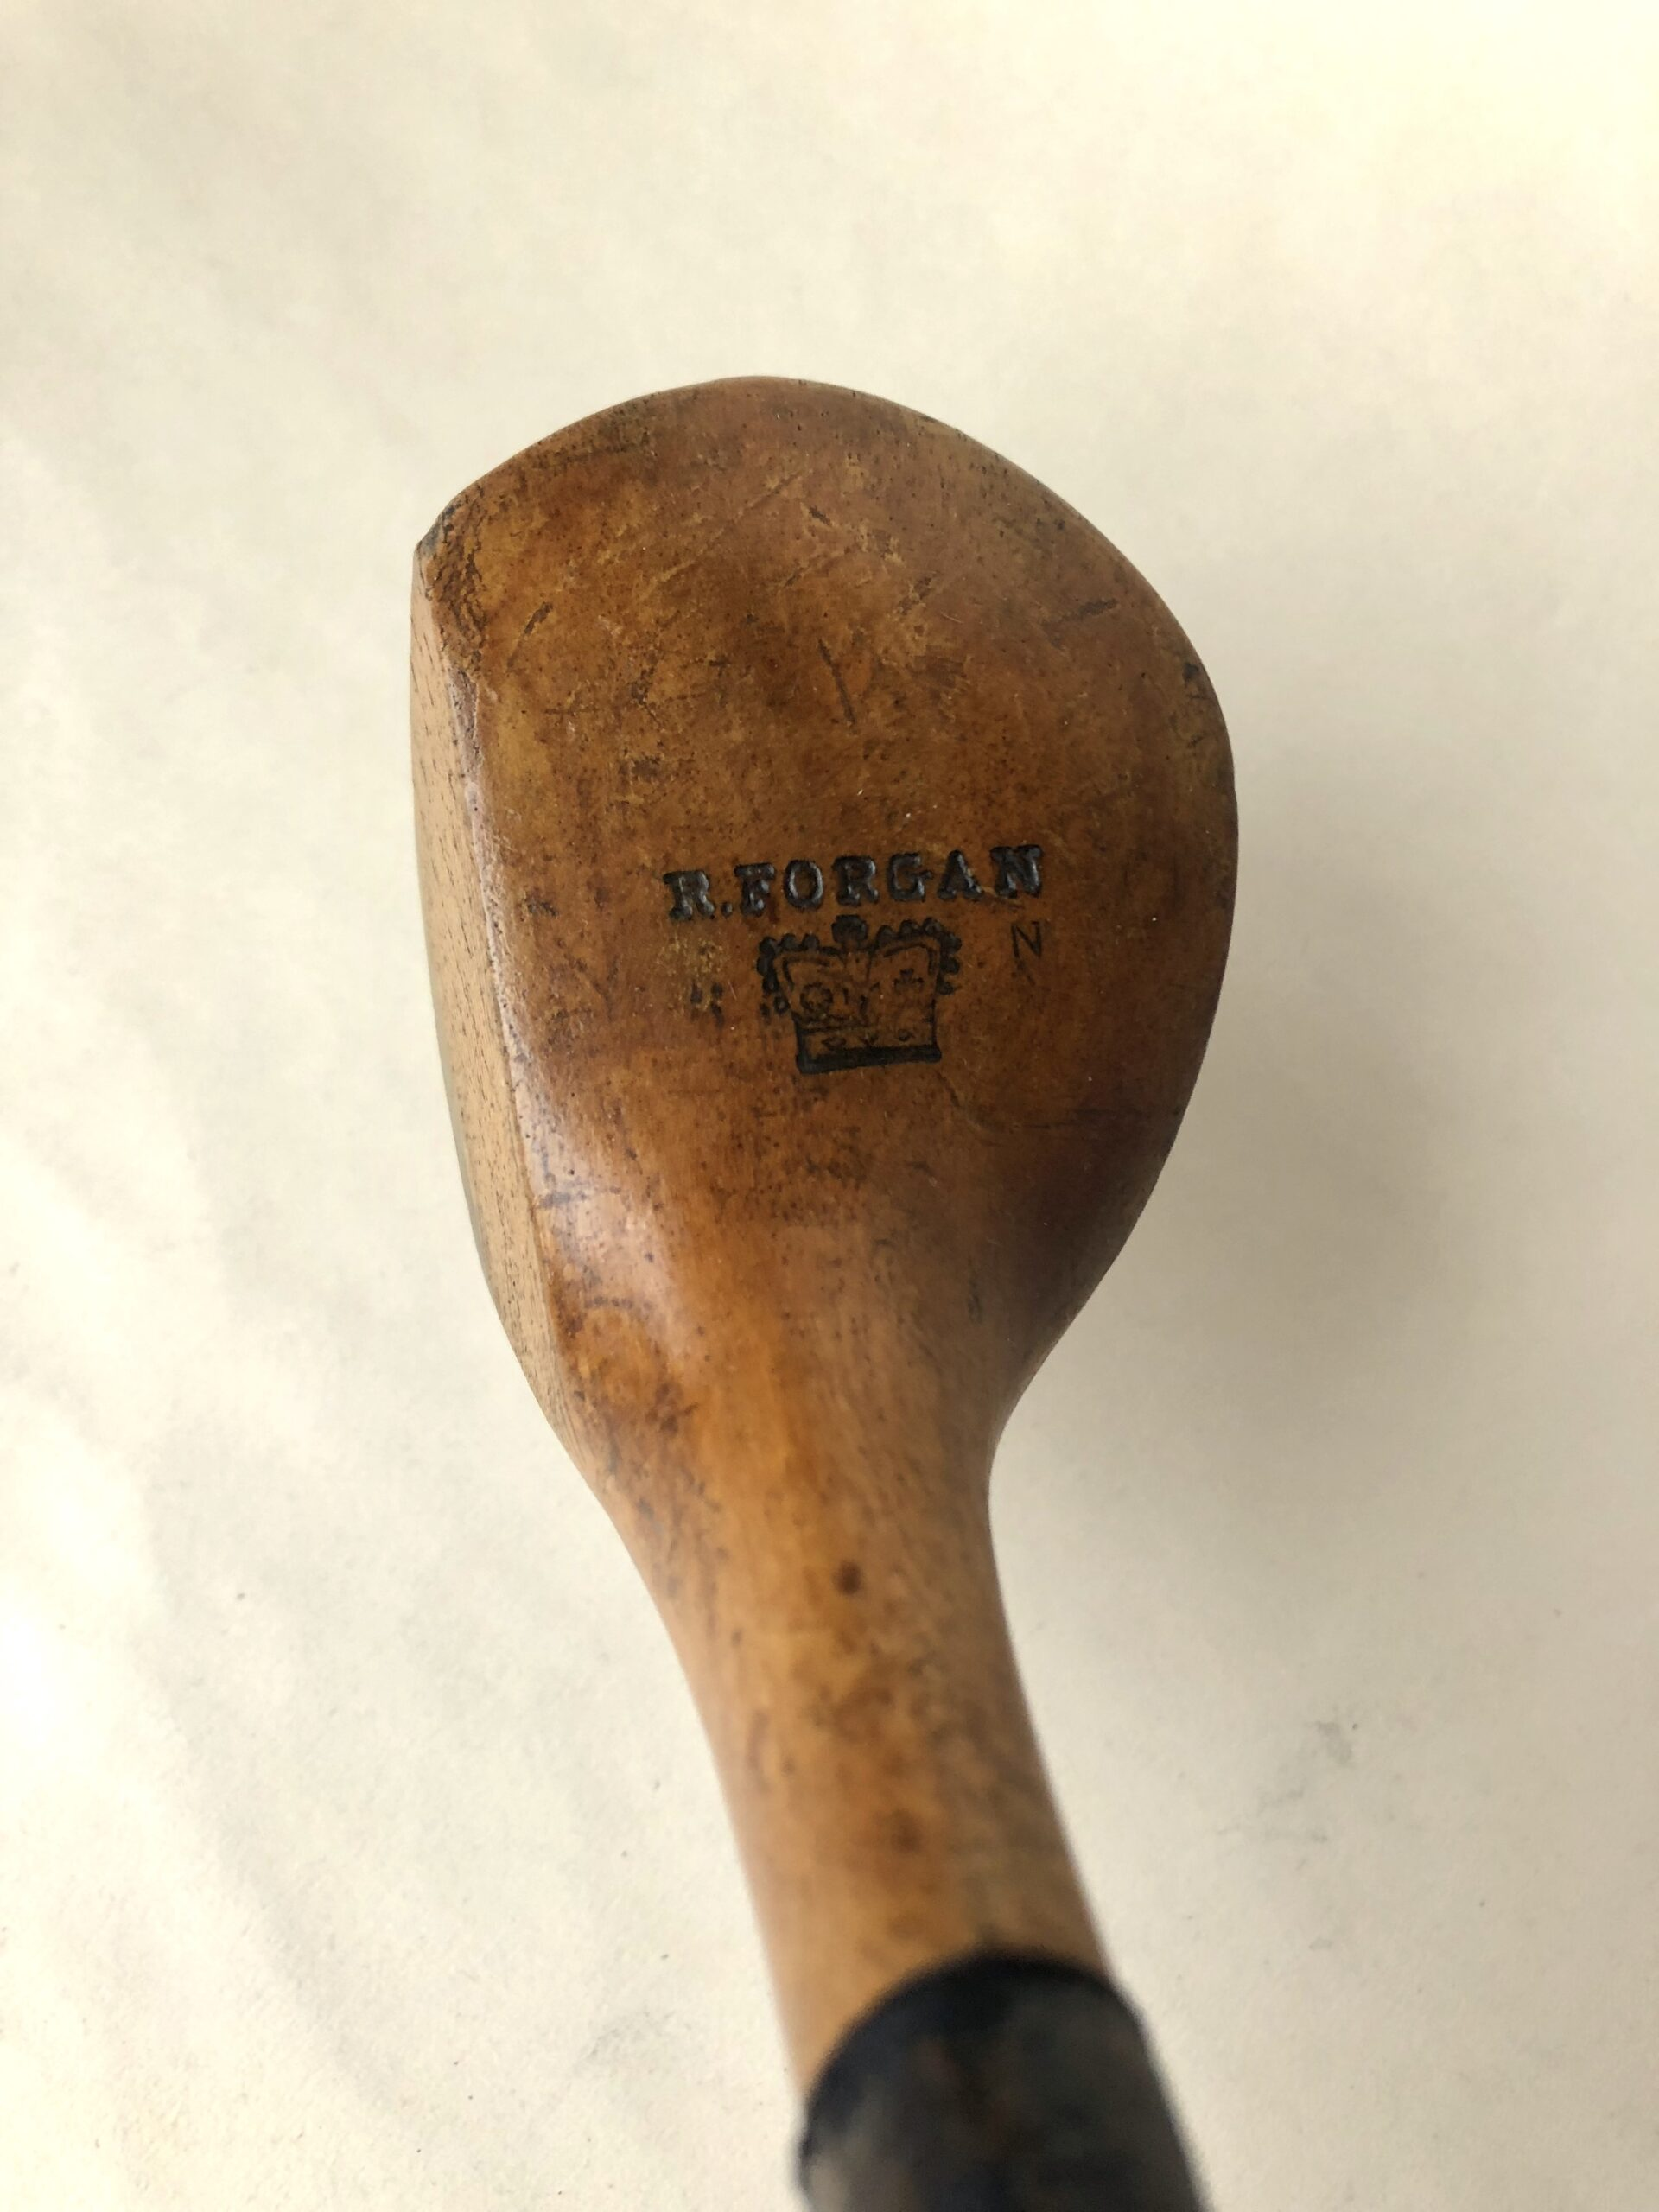 R. Forgan & Son Brassie